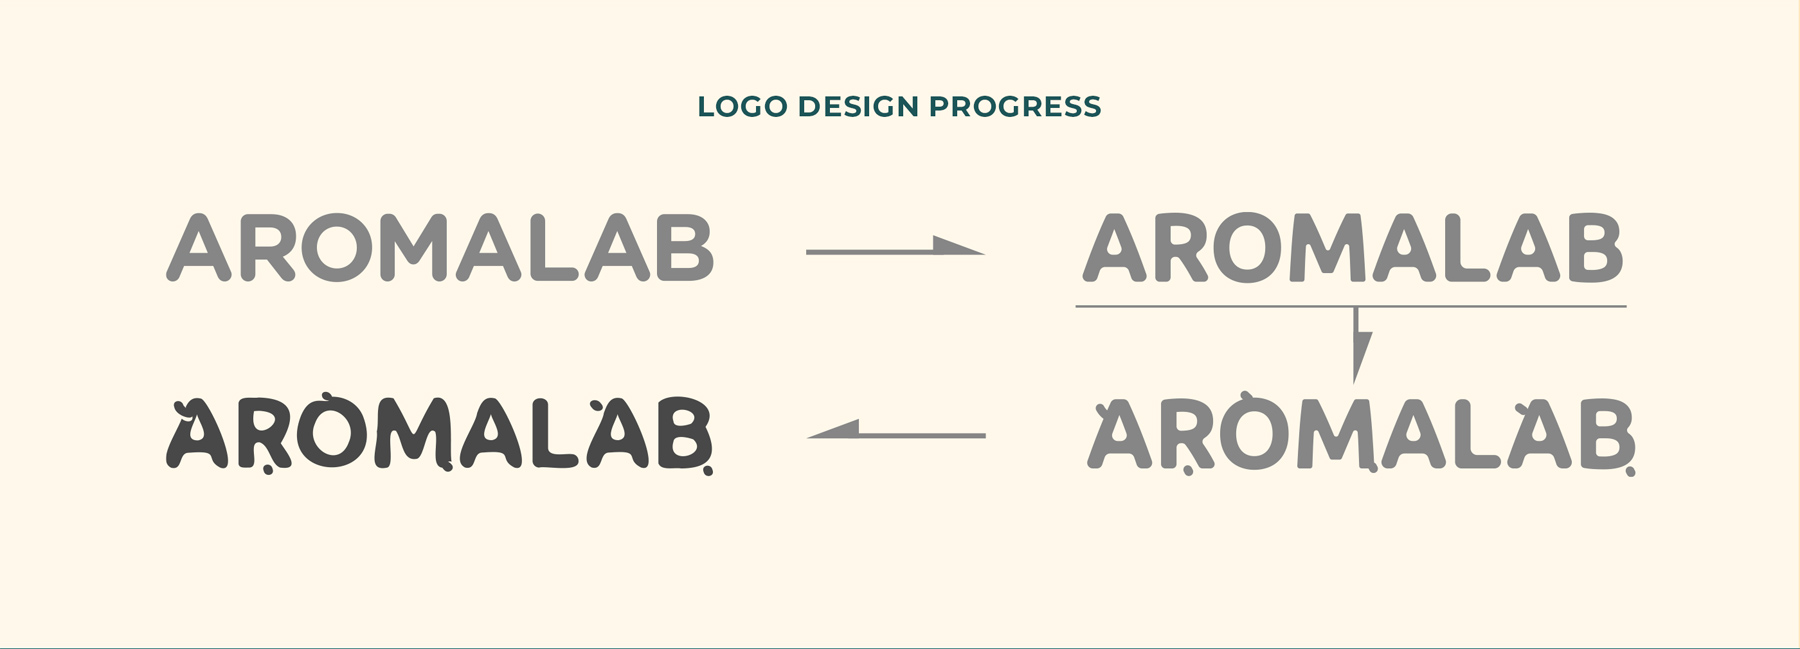 Aromalab Logo Progress